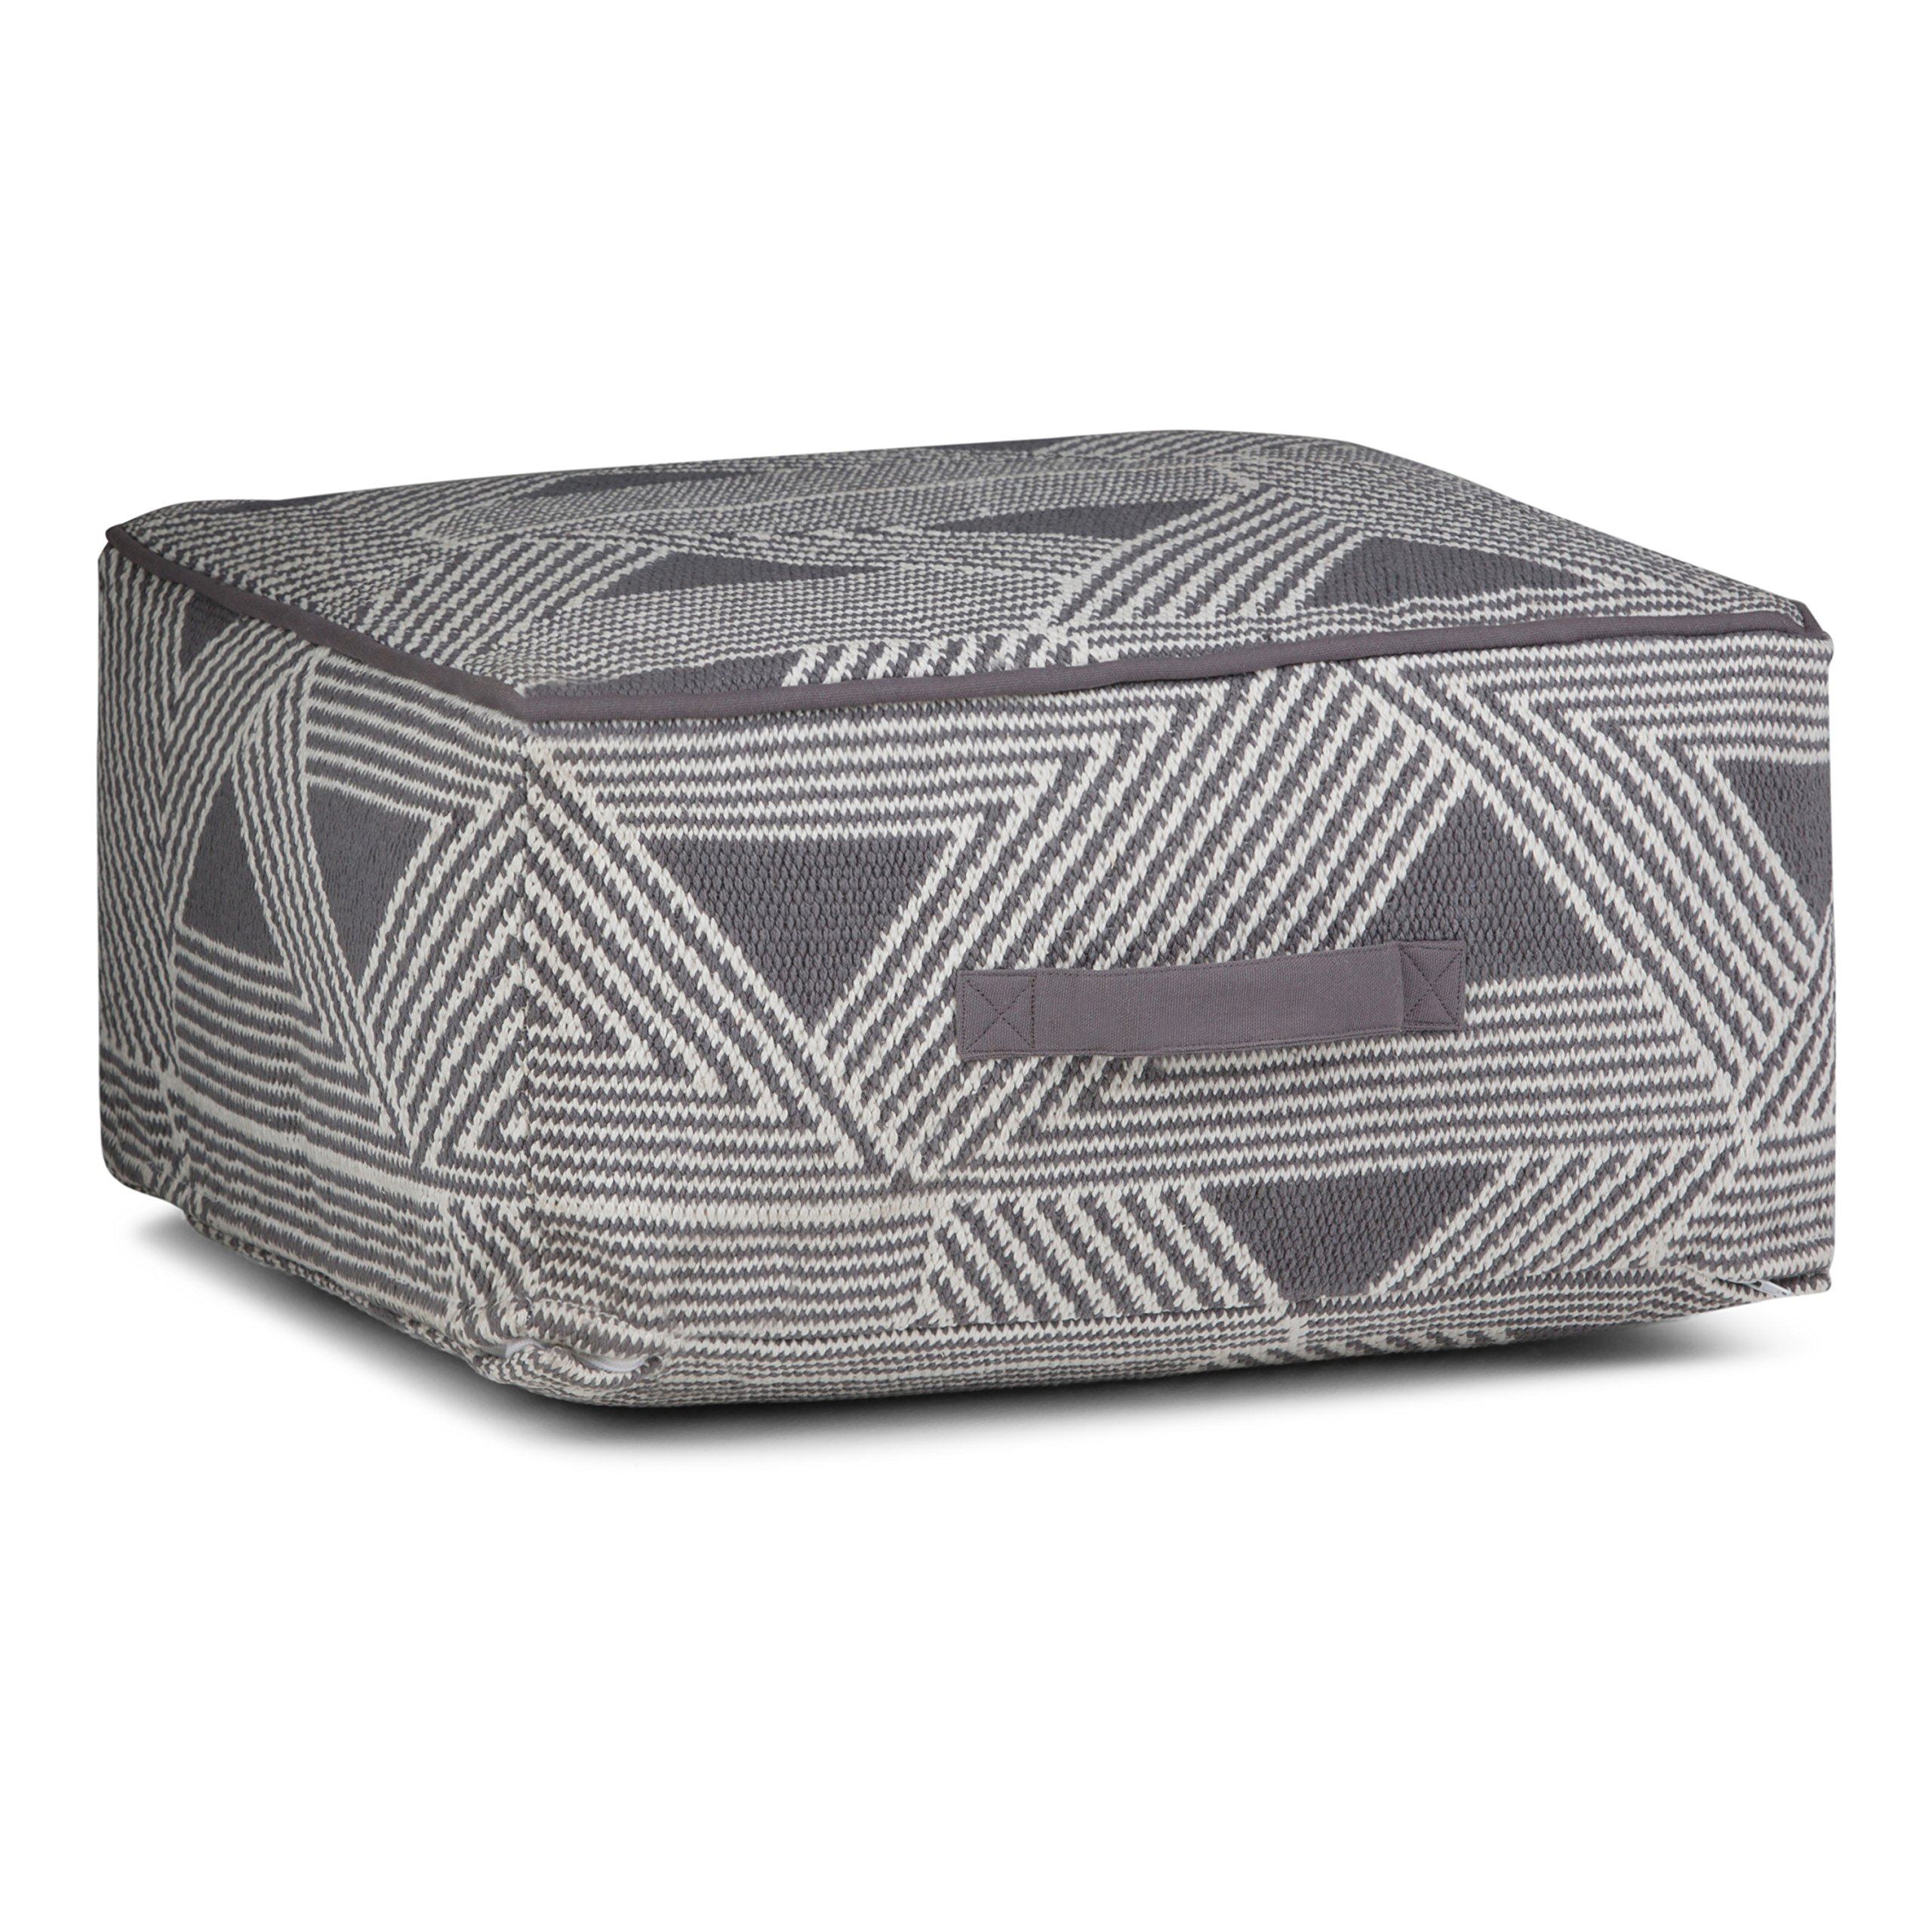 Simpli Home Headley Square Pouf, Patterned White and Grey